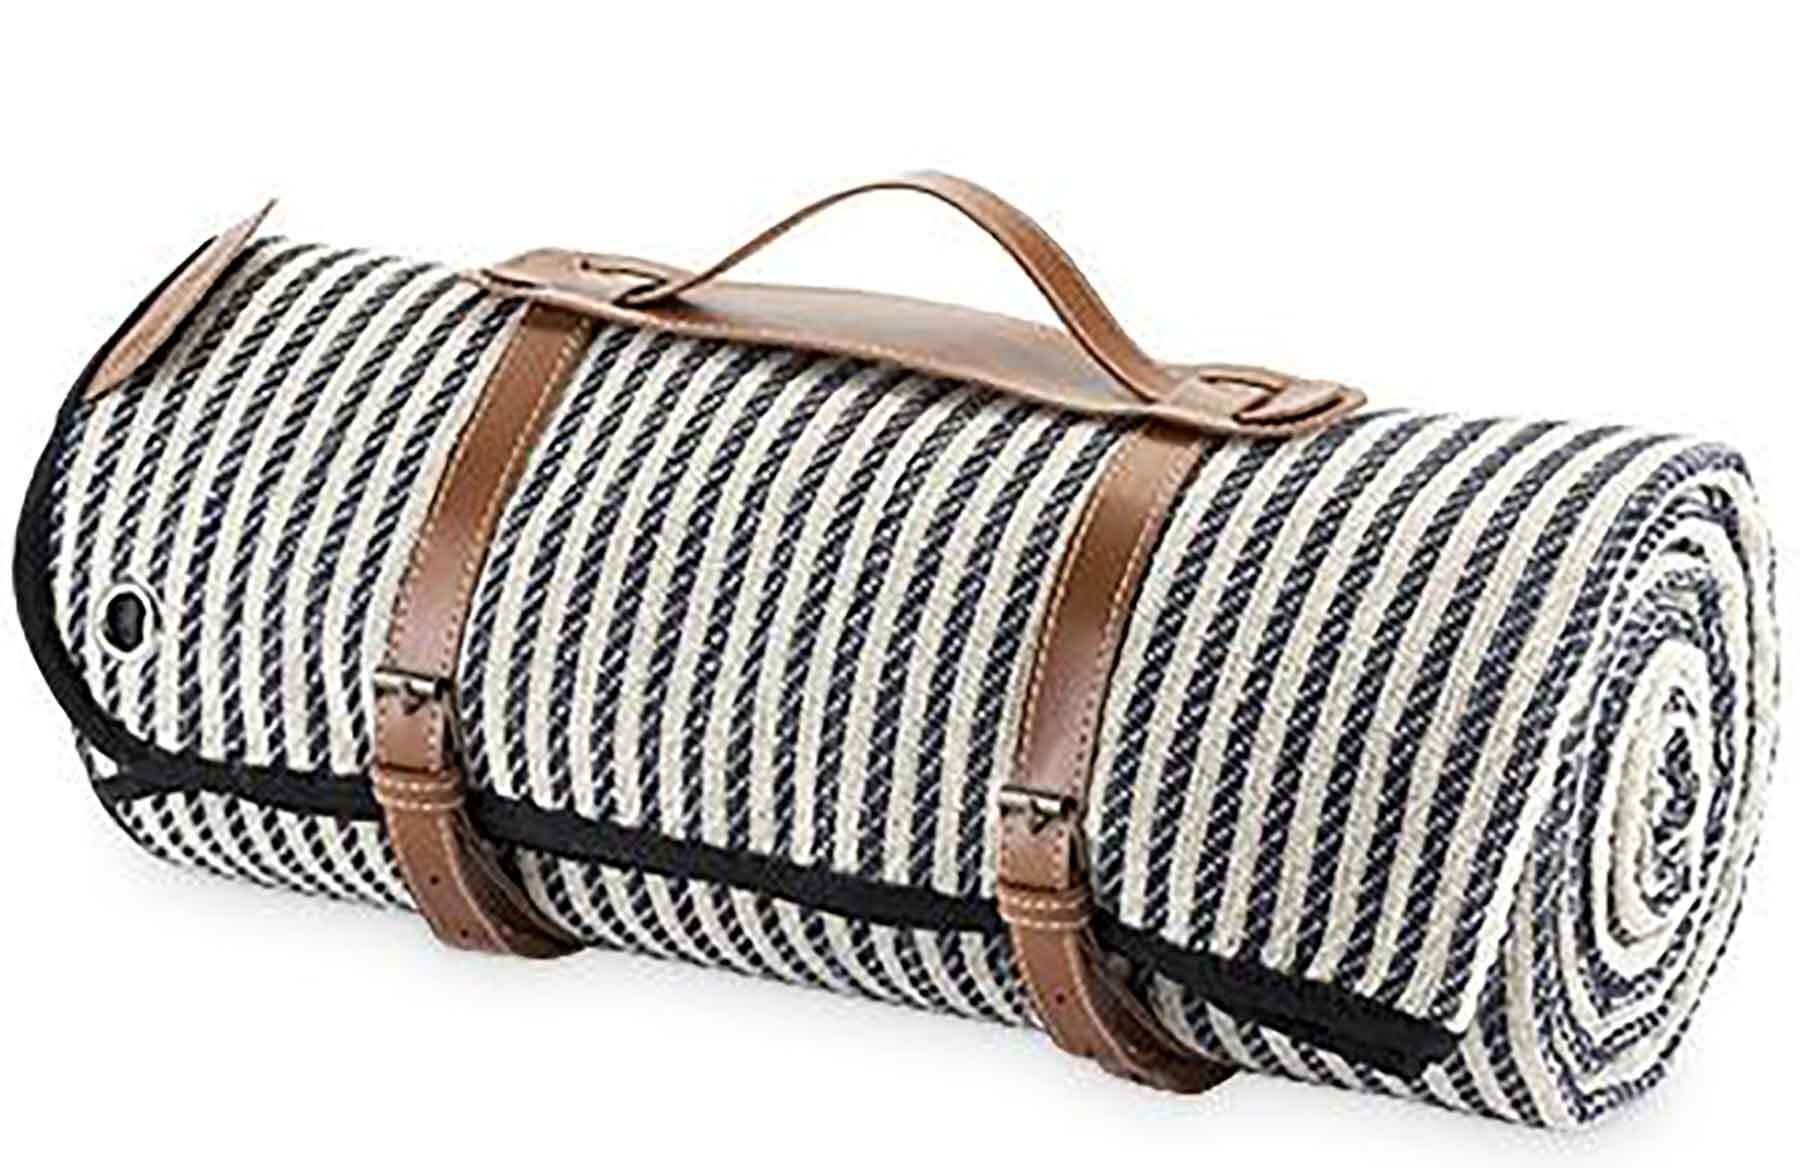 a picnic blanket rolled up with a leather handle and straps